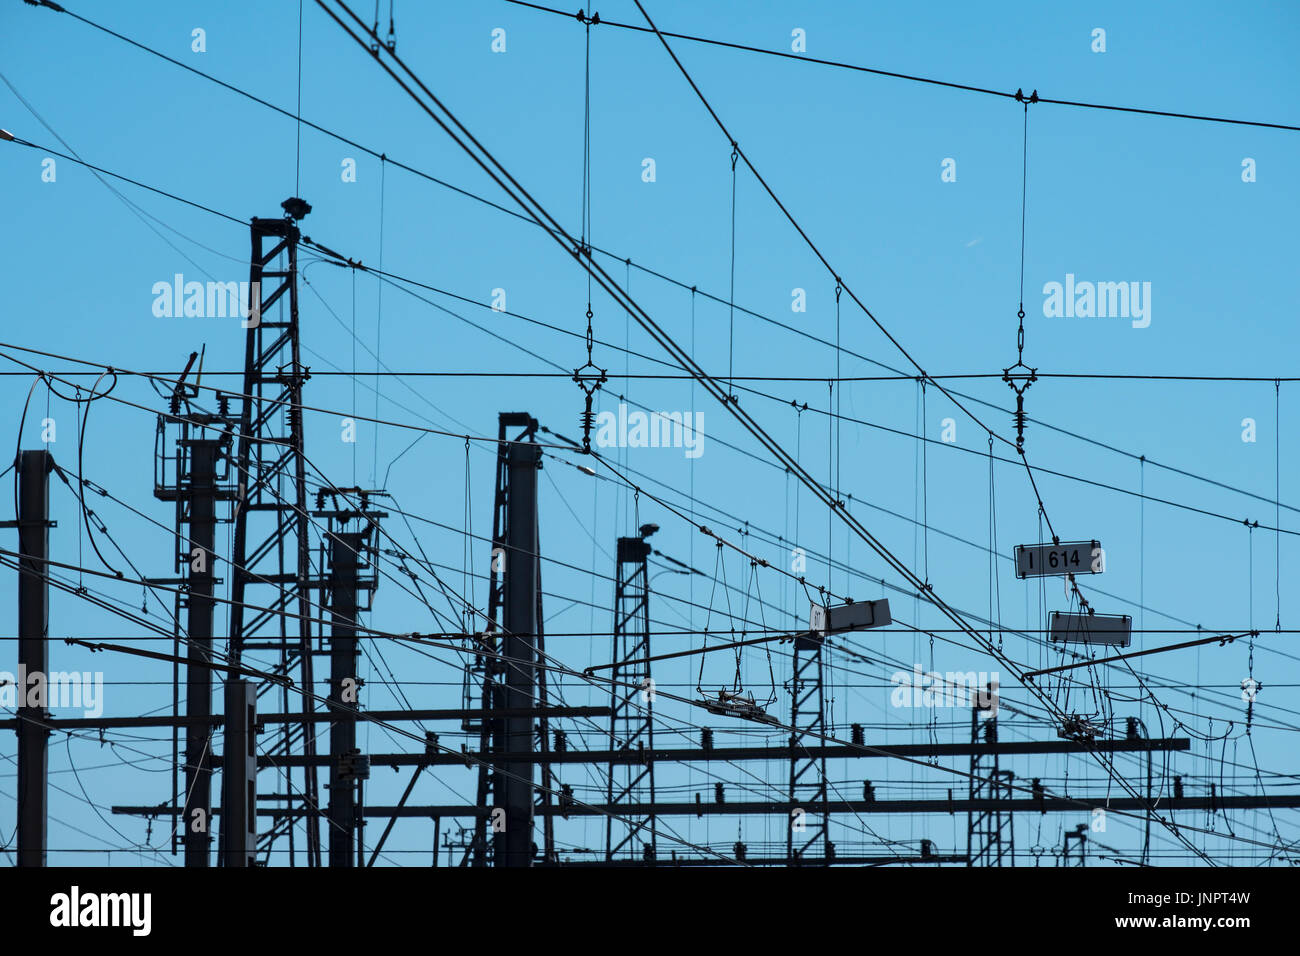 Web of overhead railway electricity cables - Stock Image